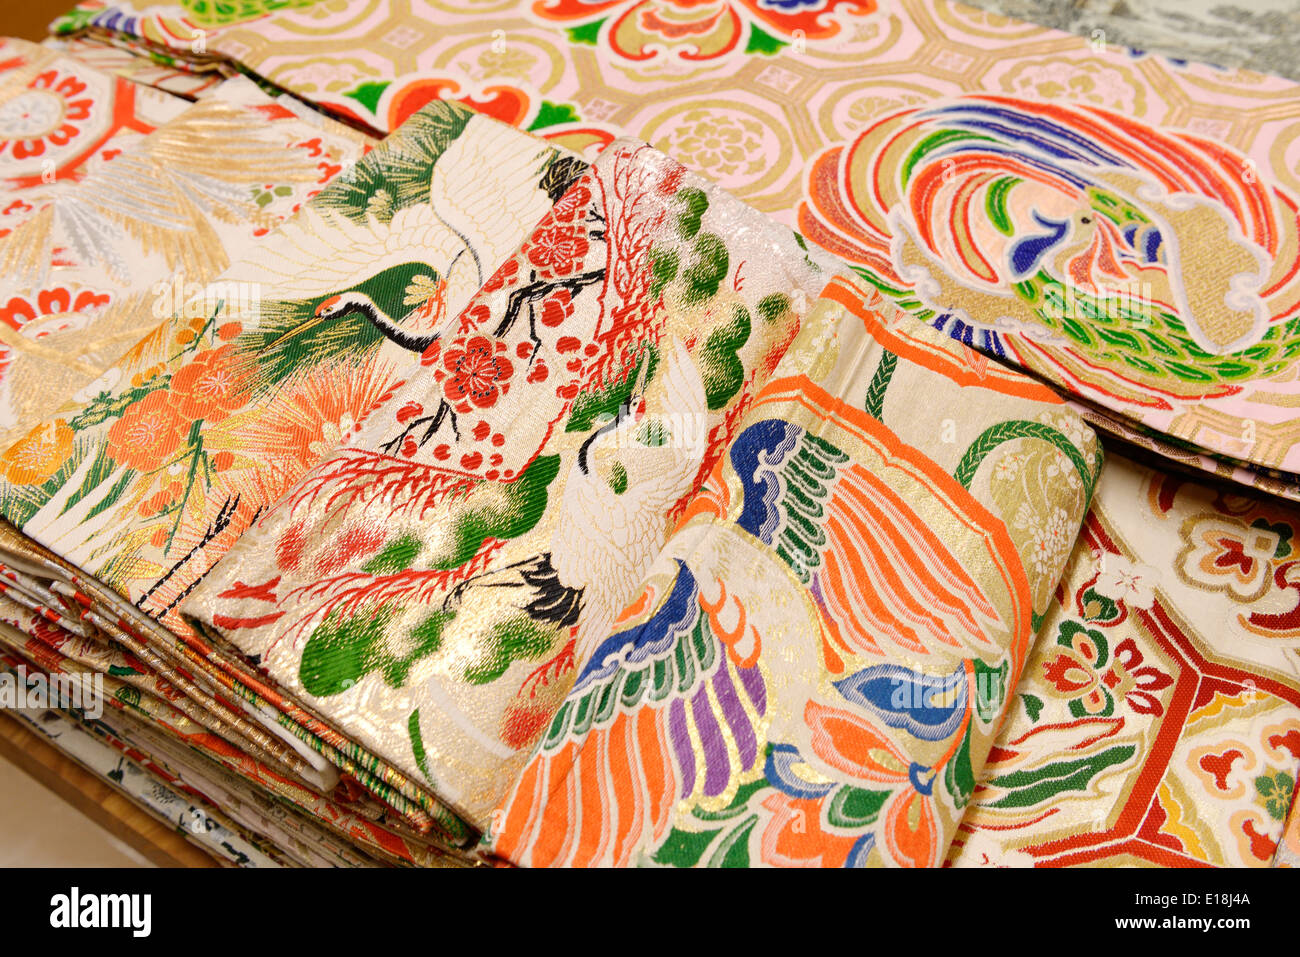 Kimono belts obi with colorful designs - Stock Image